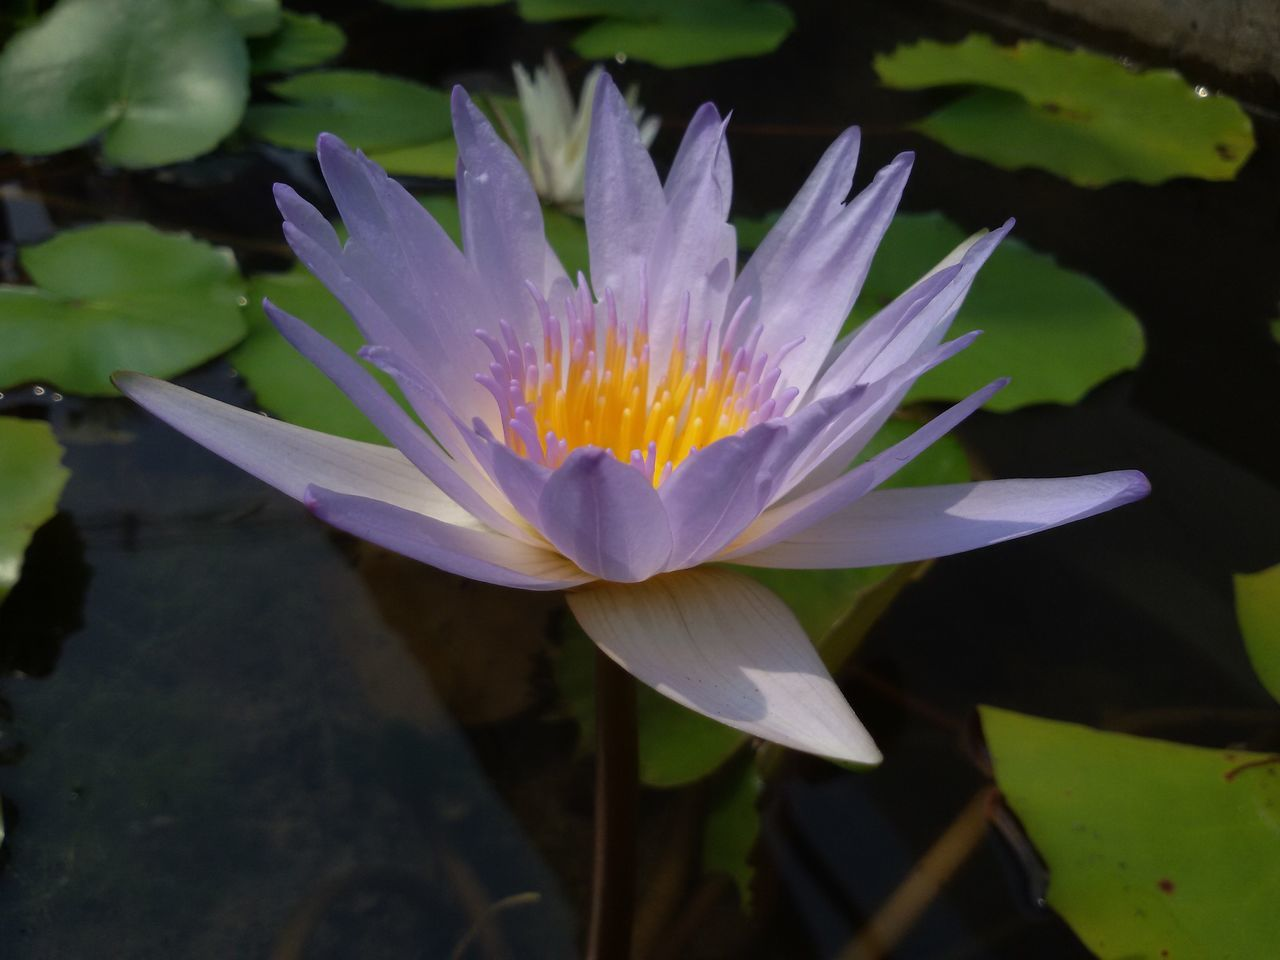 flower, petal, beauty in nature, nature, freshness, fragility, water, flower head, growth, water lily, plant, lotus water lily, outdoors, no people, blooming, lotus, day, floating on water, lily pad, lake, leaf, close-up